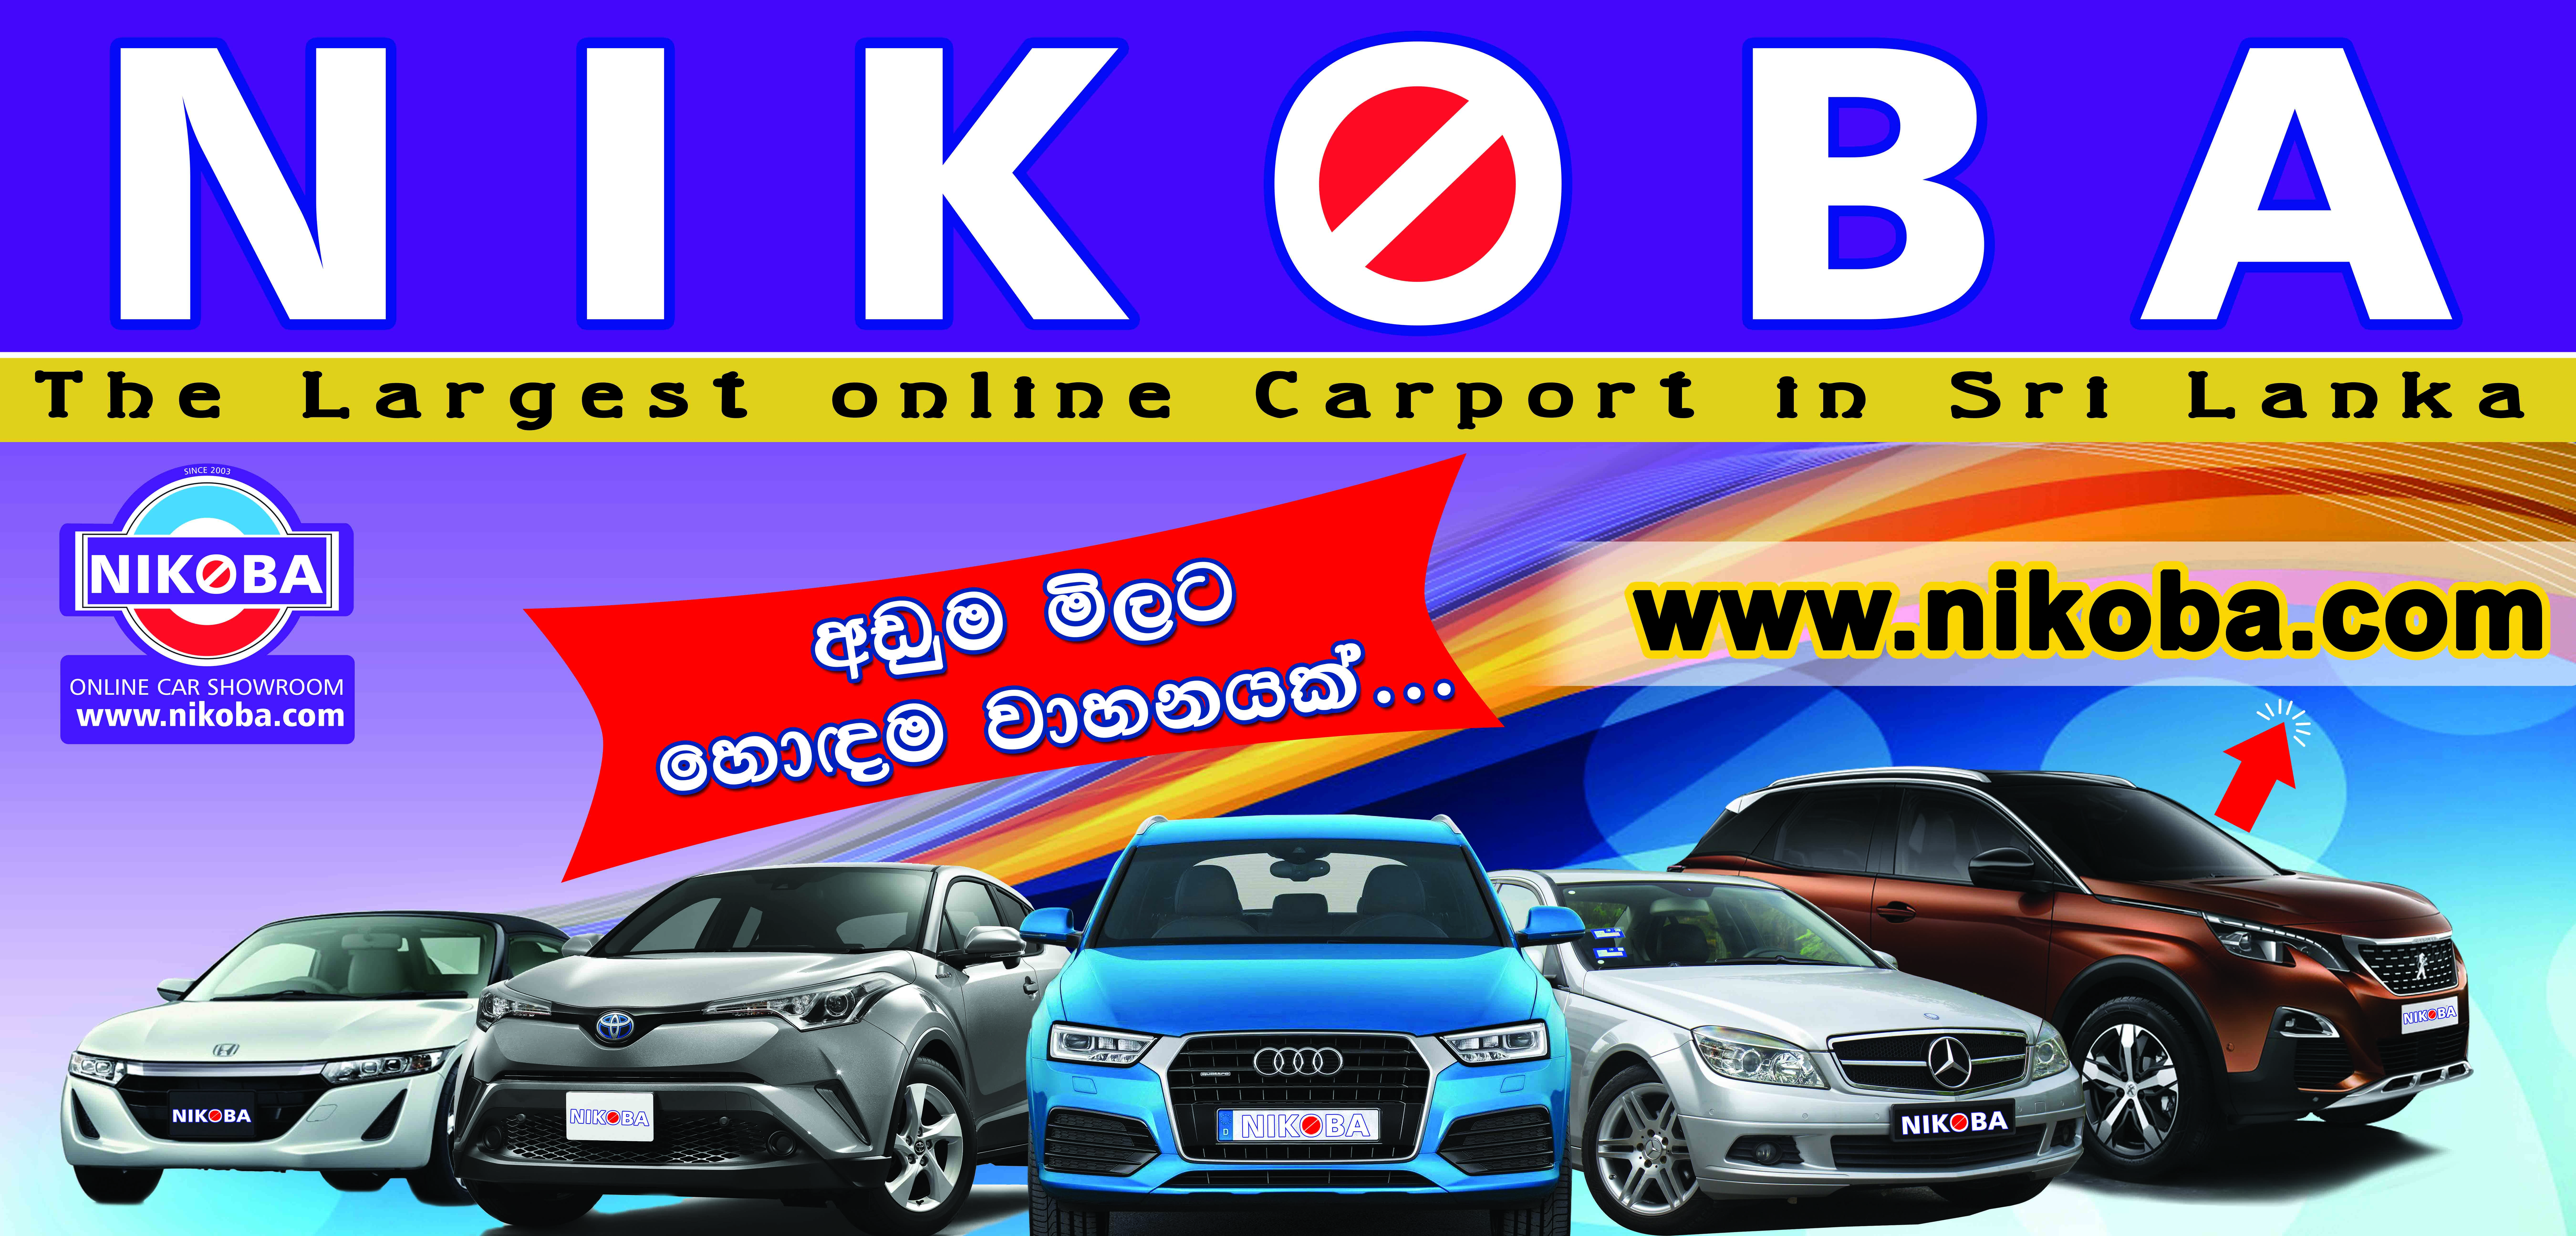 nikoba car auction